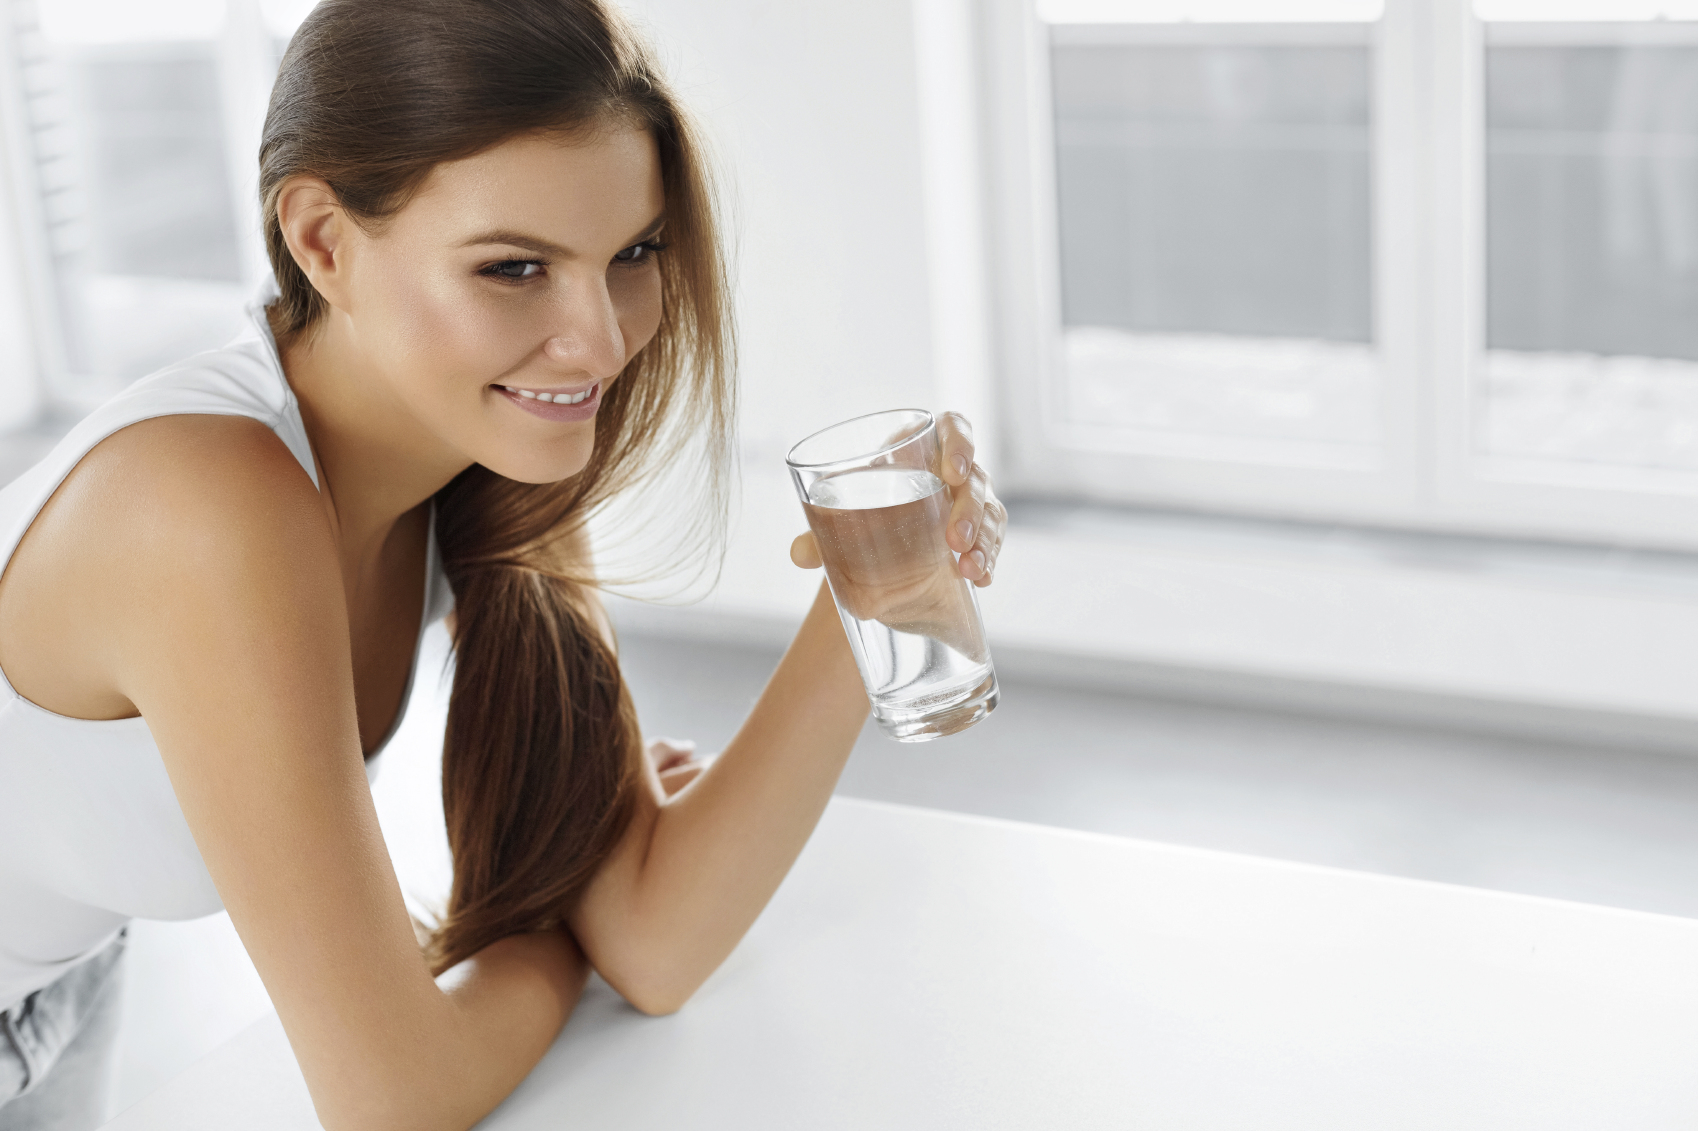 Healthy Lifestyle. Happy Woman With Glass Of Water. Drinks. Heal